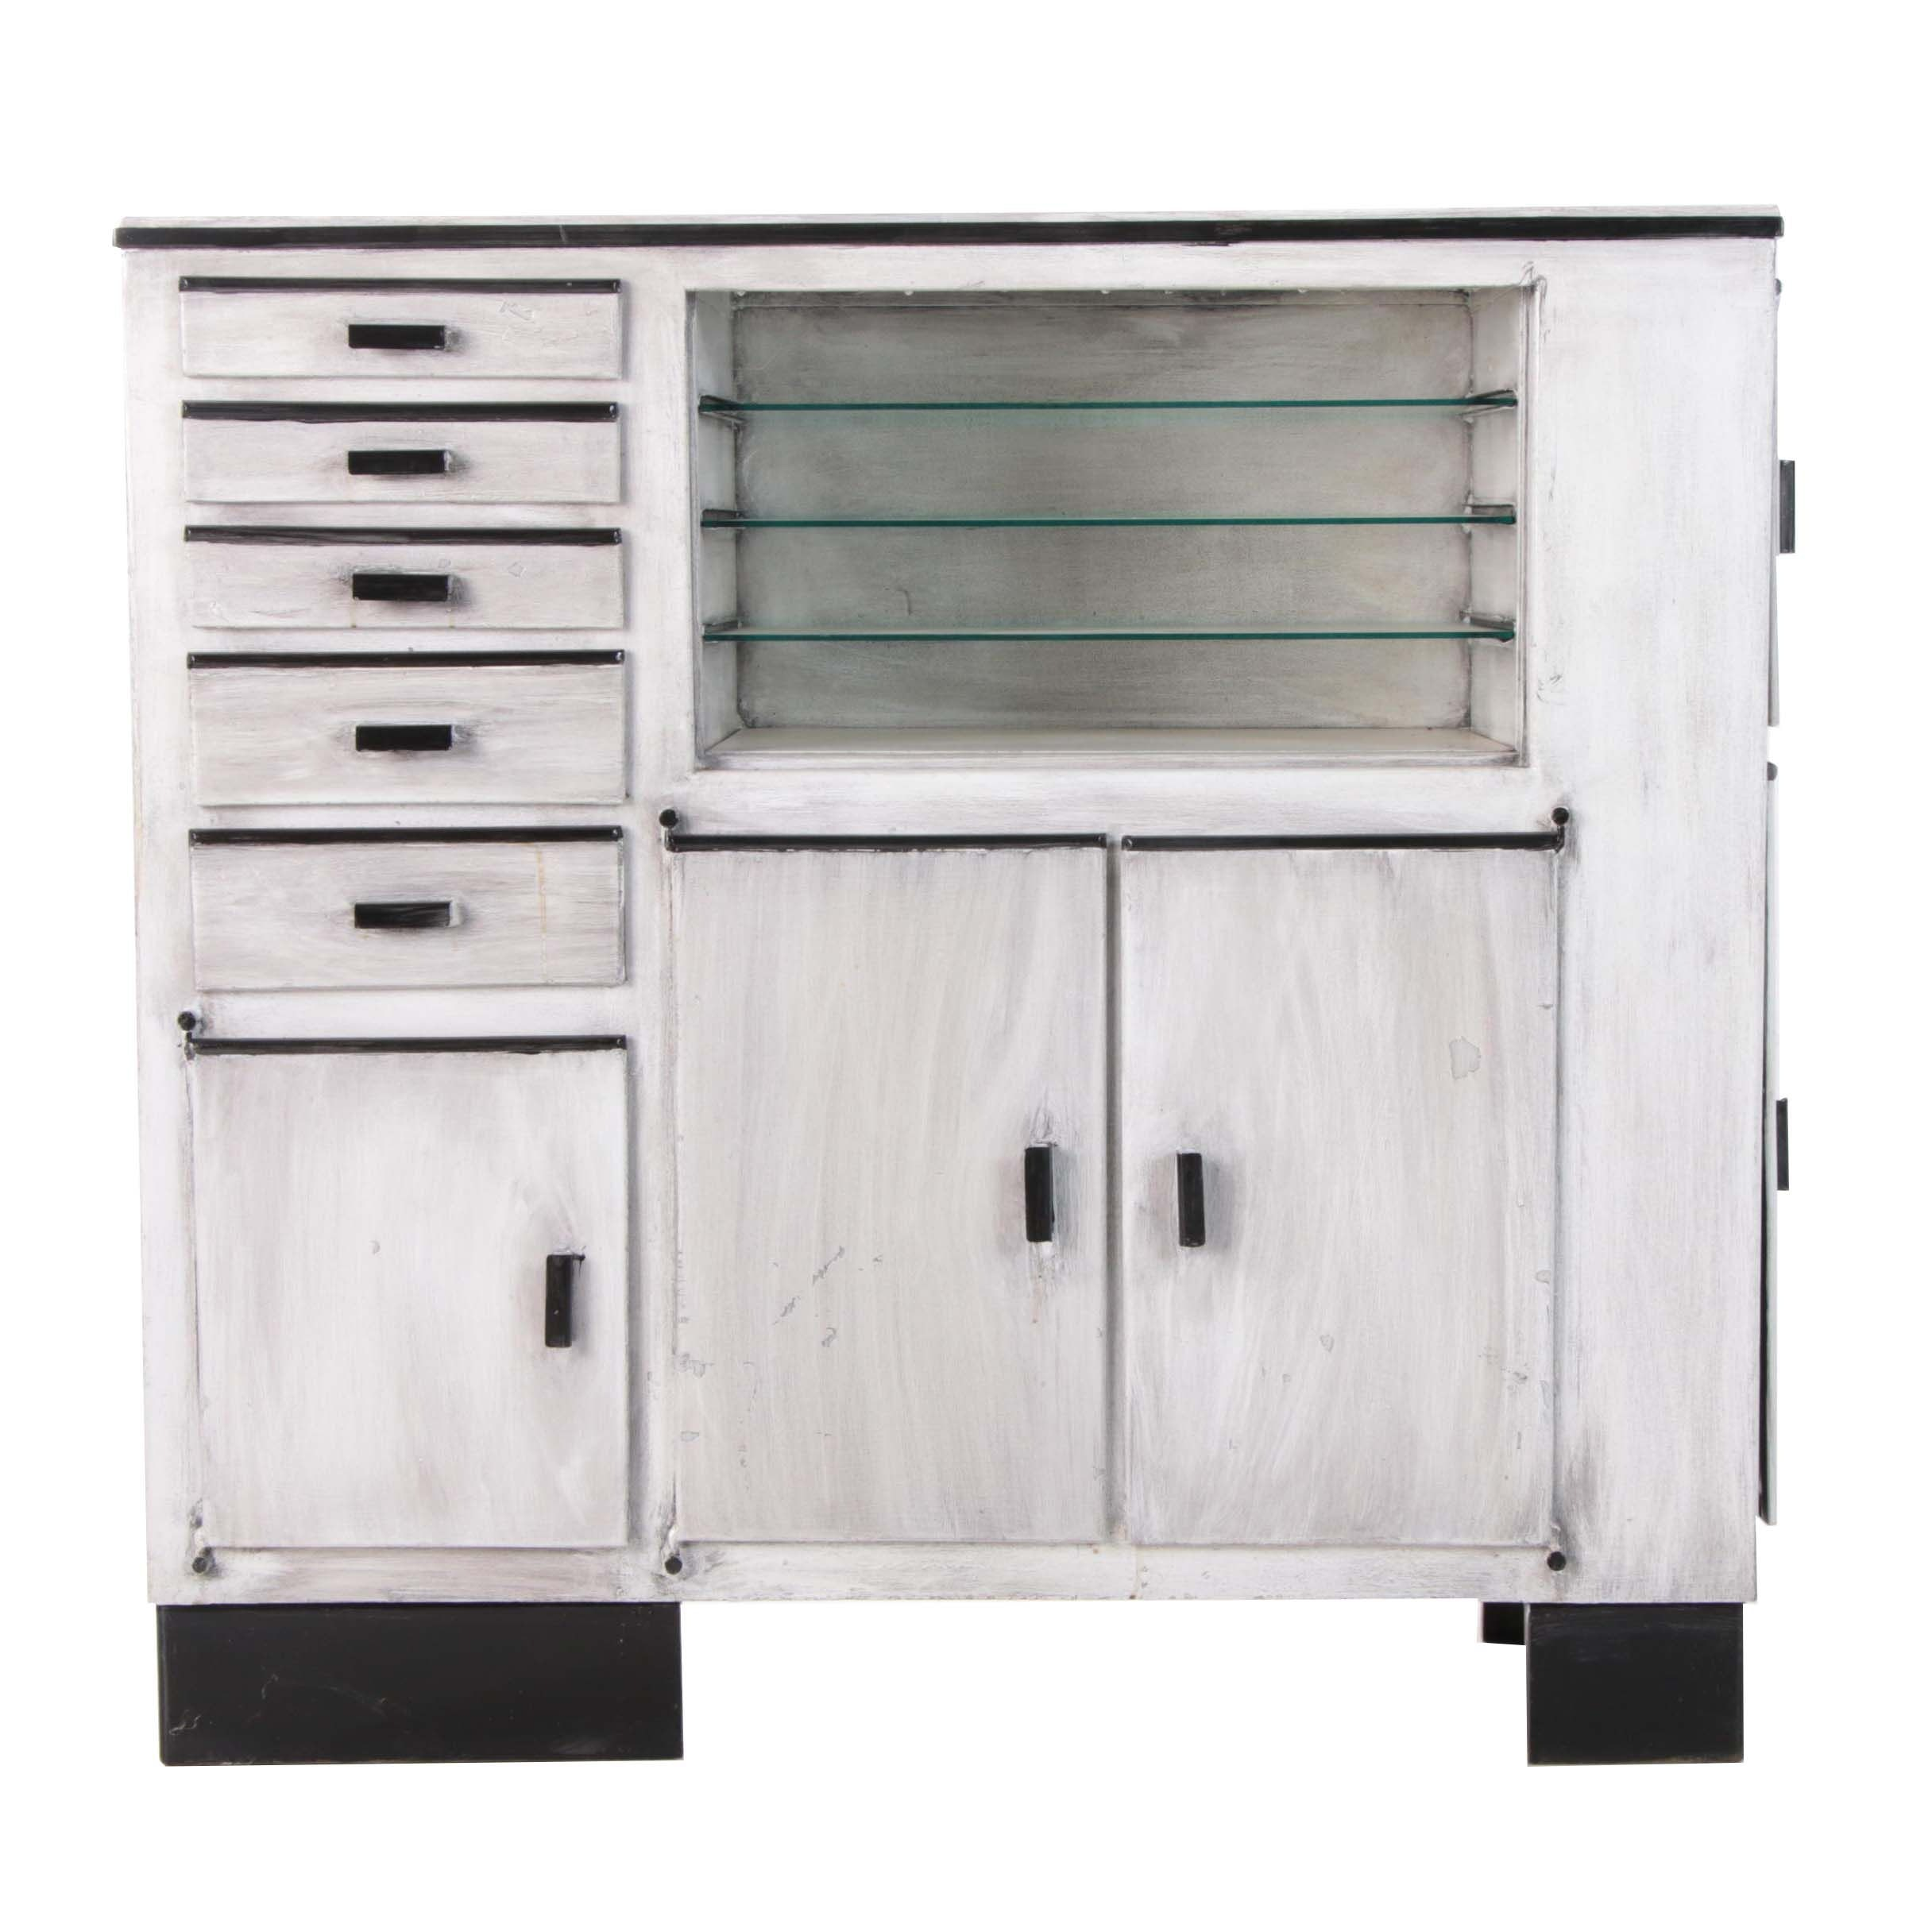 Painted Wood and Metal Cabinet with Drawers and Glass Shelves, Late 20th Century